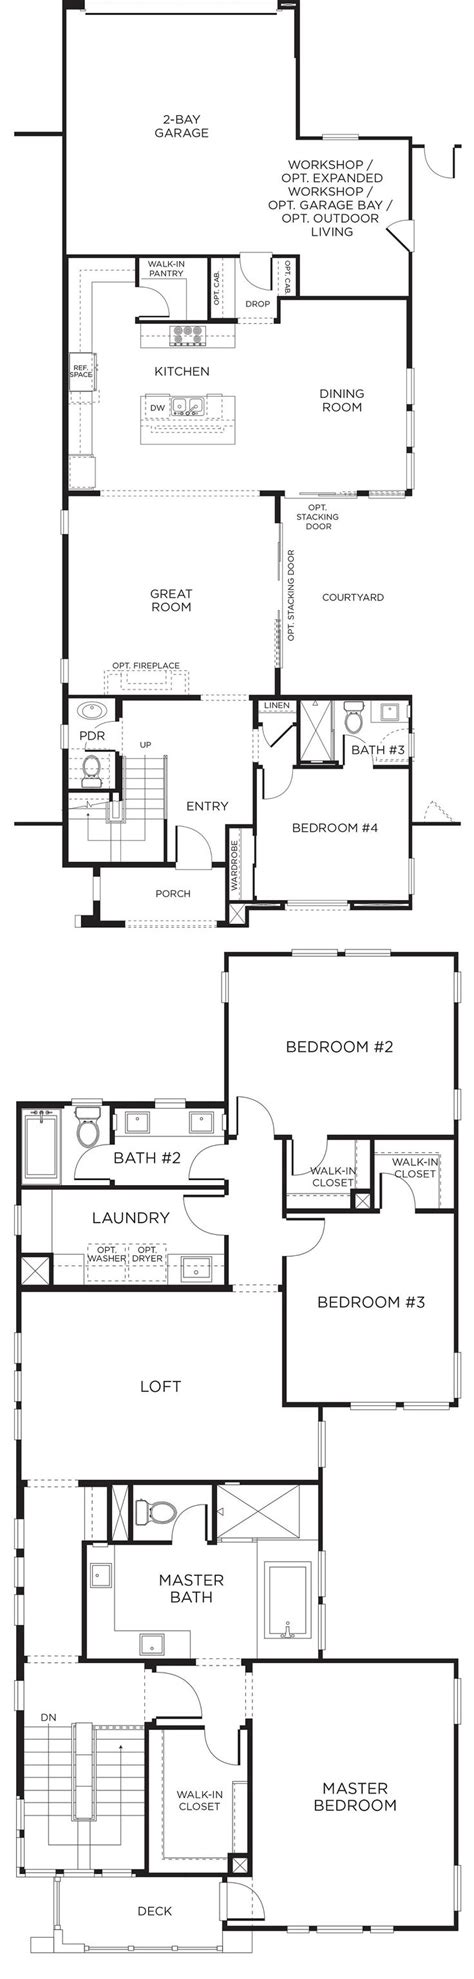 pardee homes floor plans casav 237 a floor plan 2 pardee homes sandiego newhomes